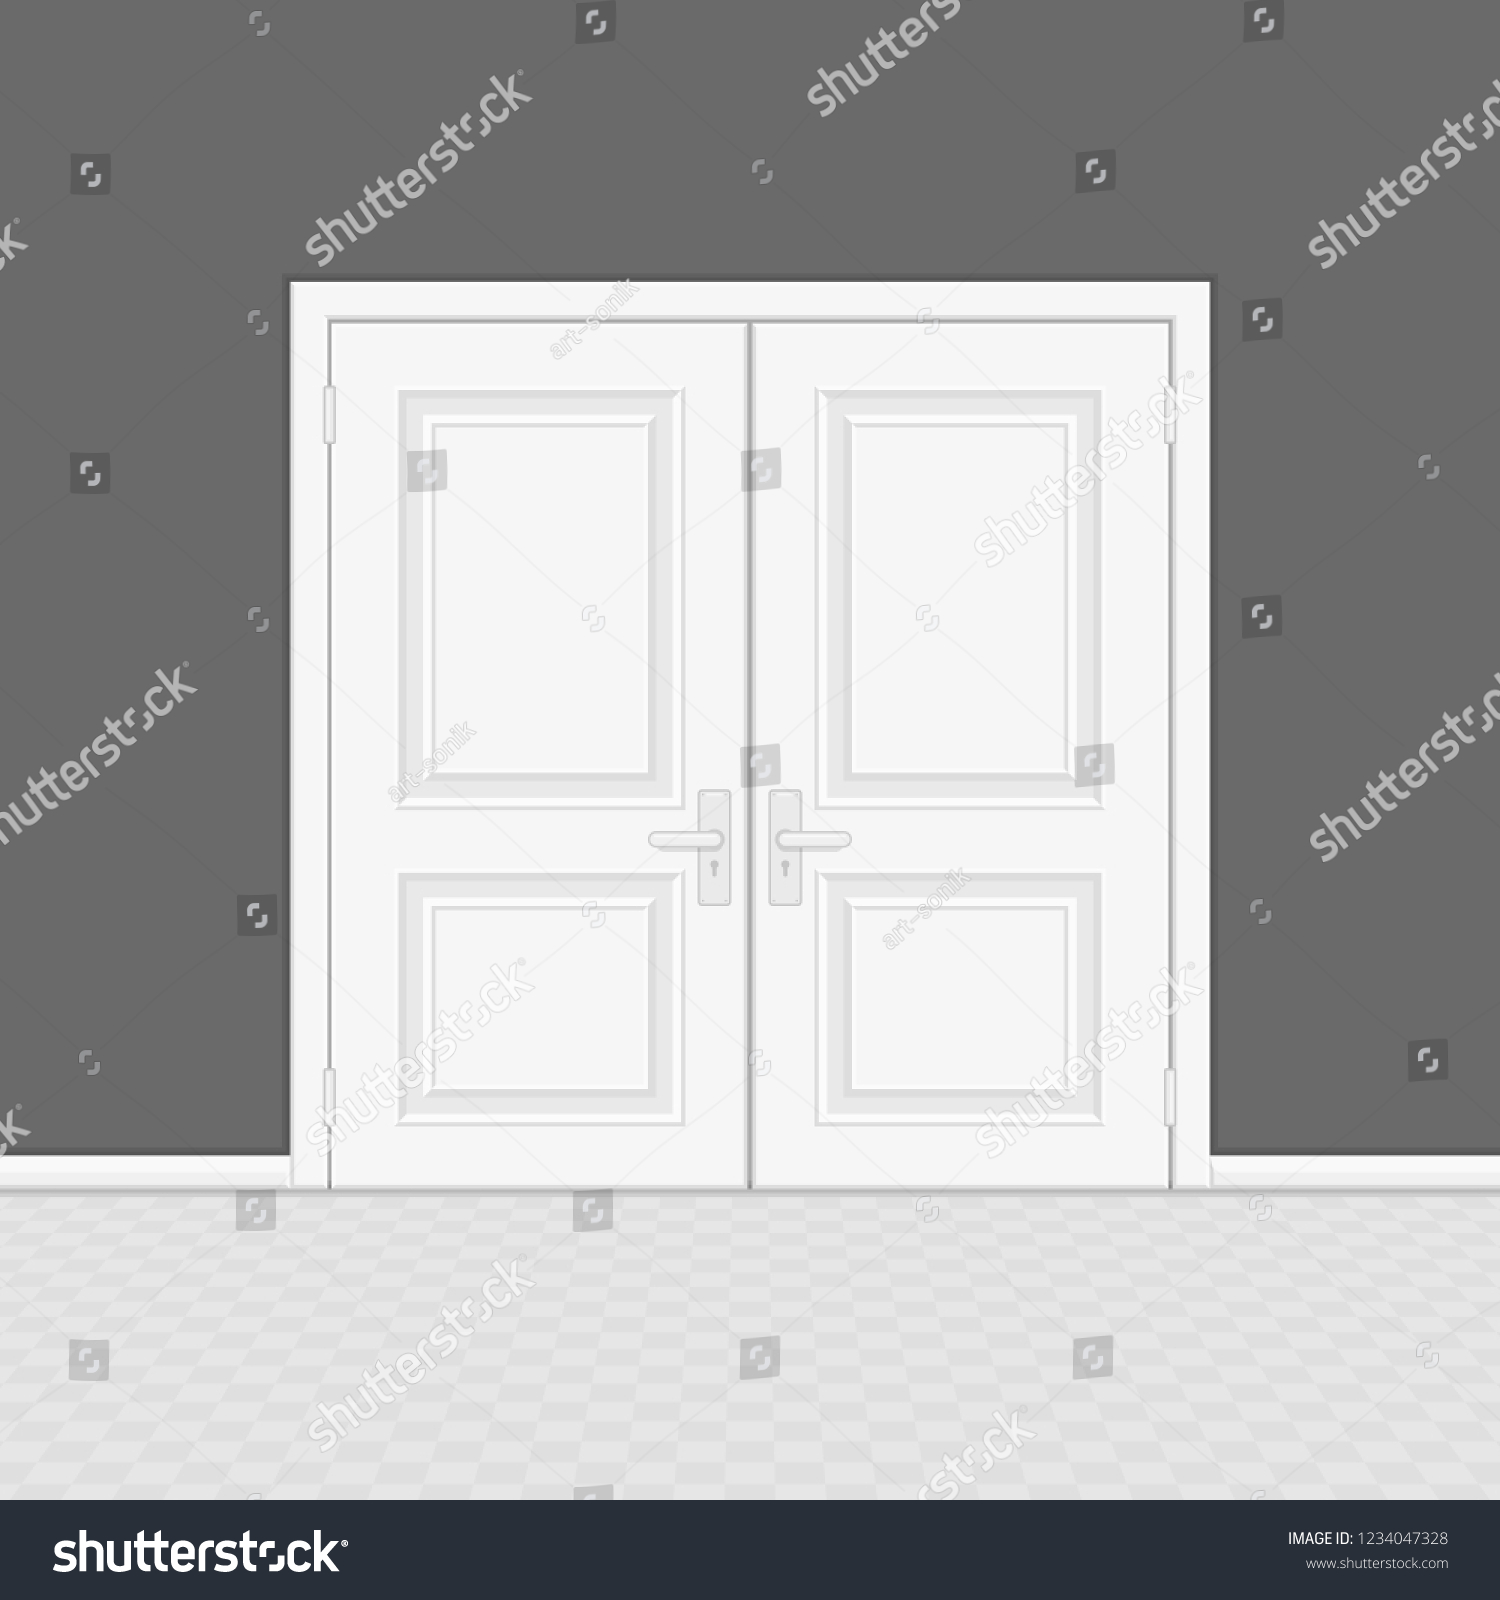 hight resolution of closed entrance door with frame realistic style white interior wooden doors on gray wall